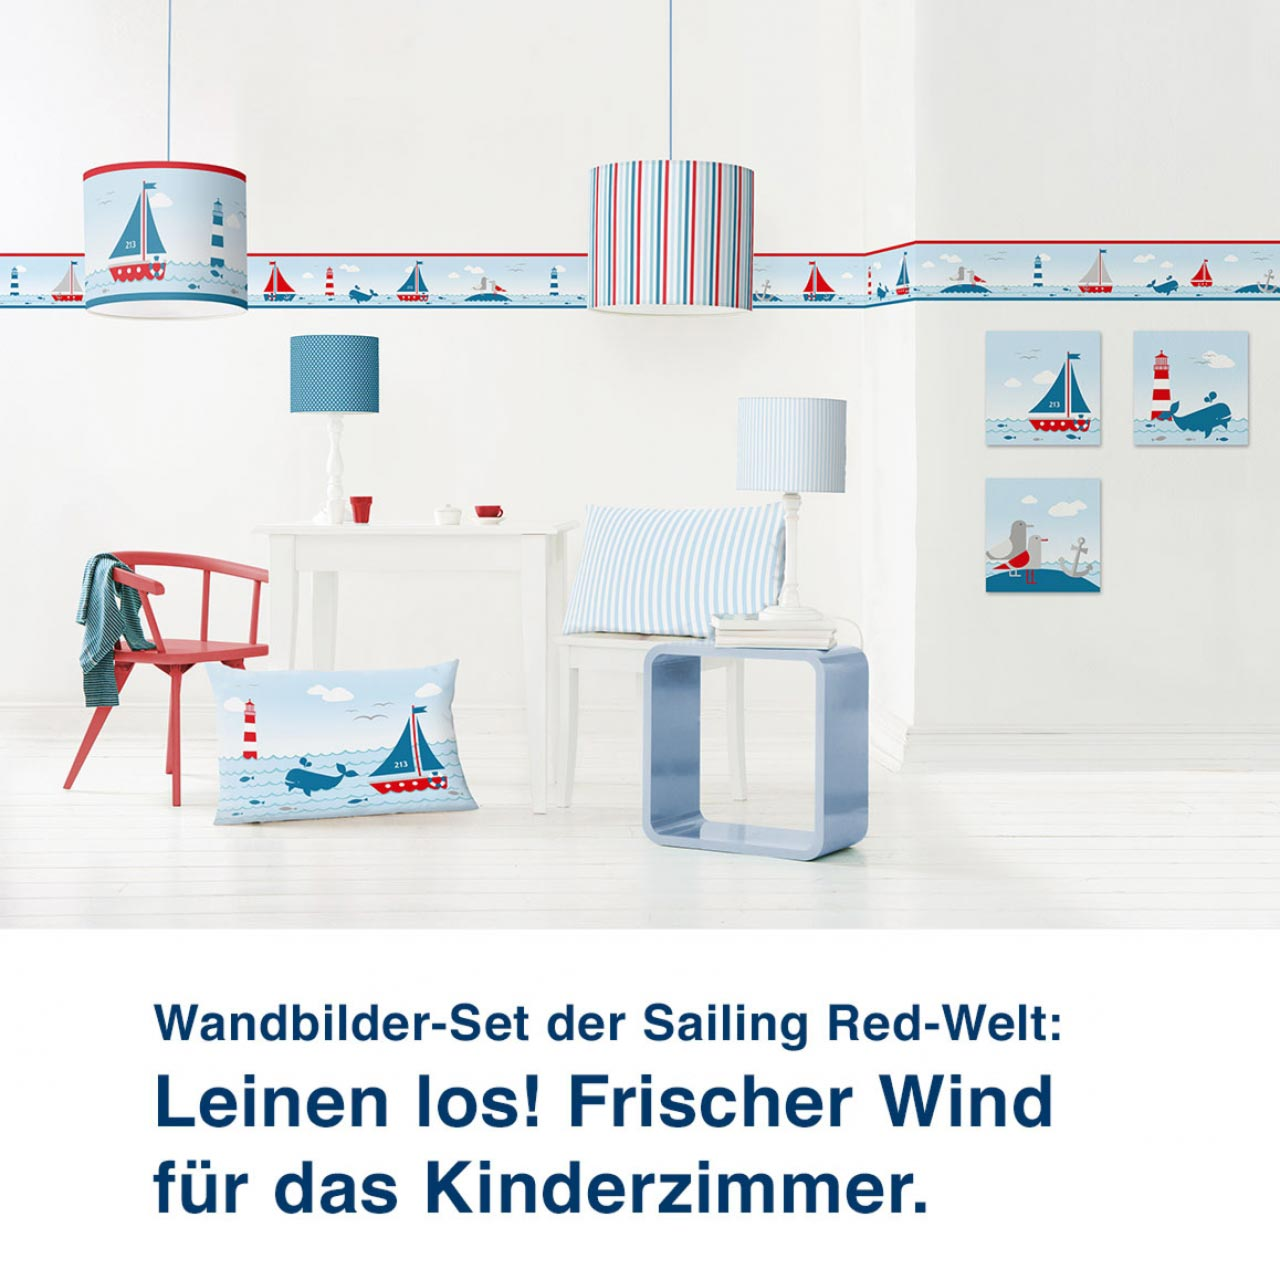 Wandbilder-Set im maritimen Design, Sailing Red